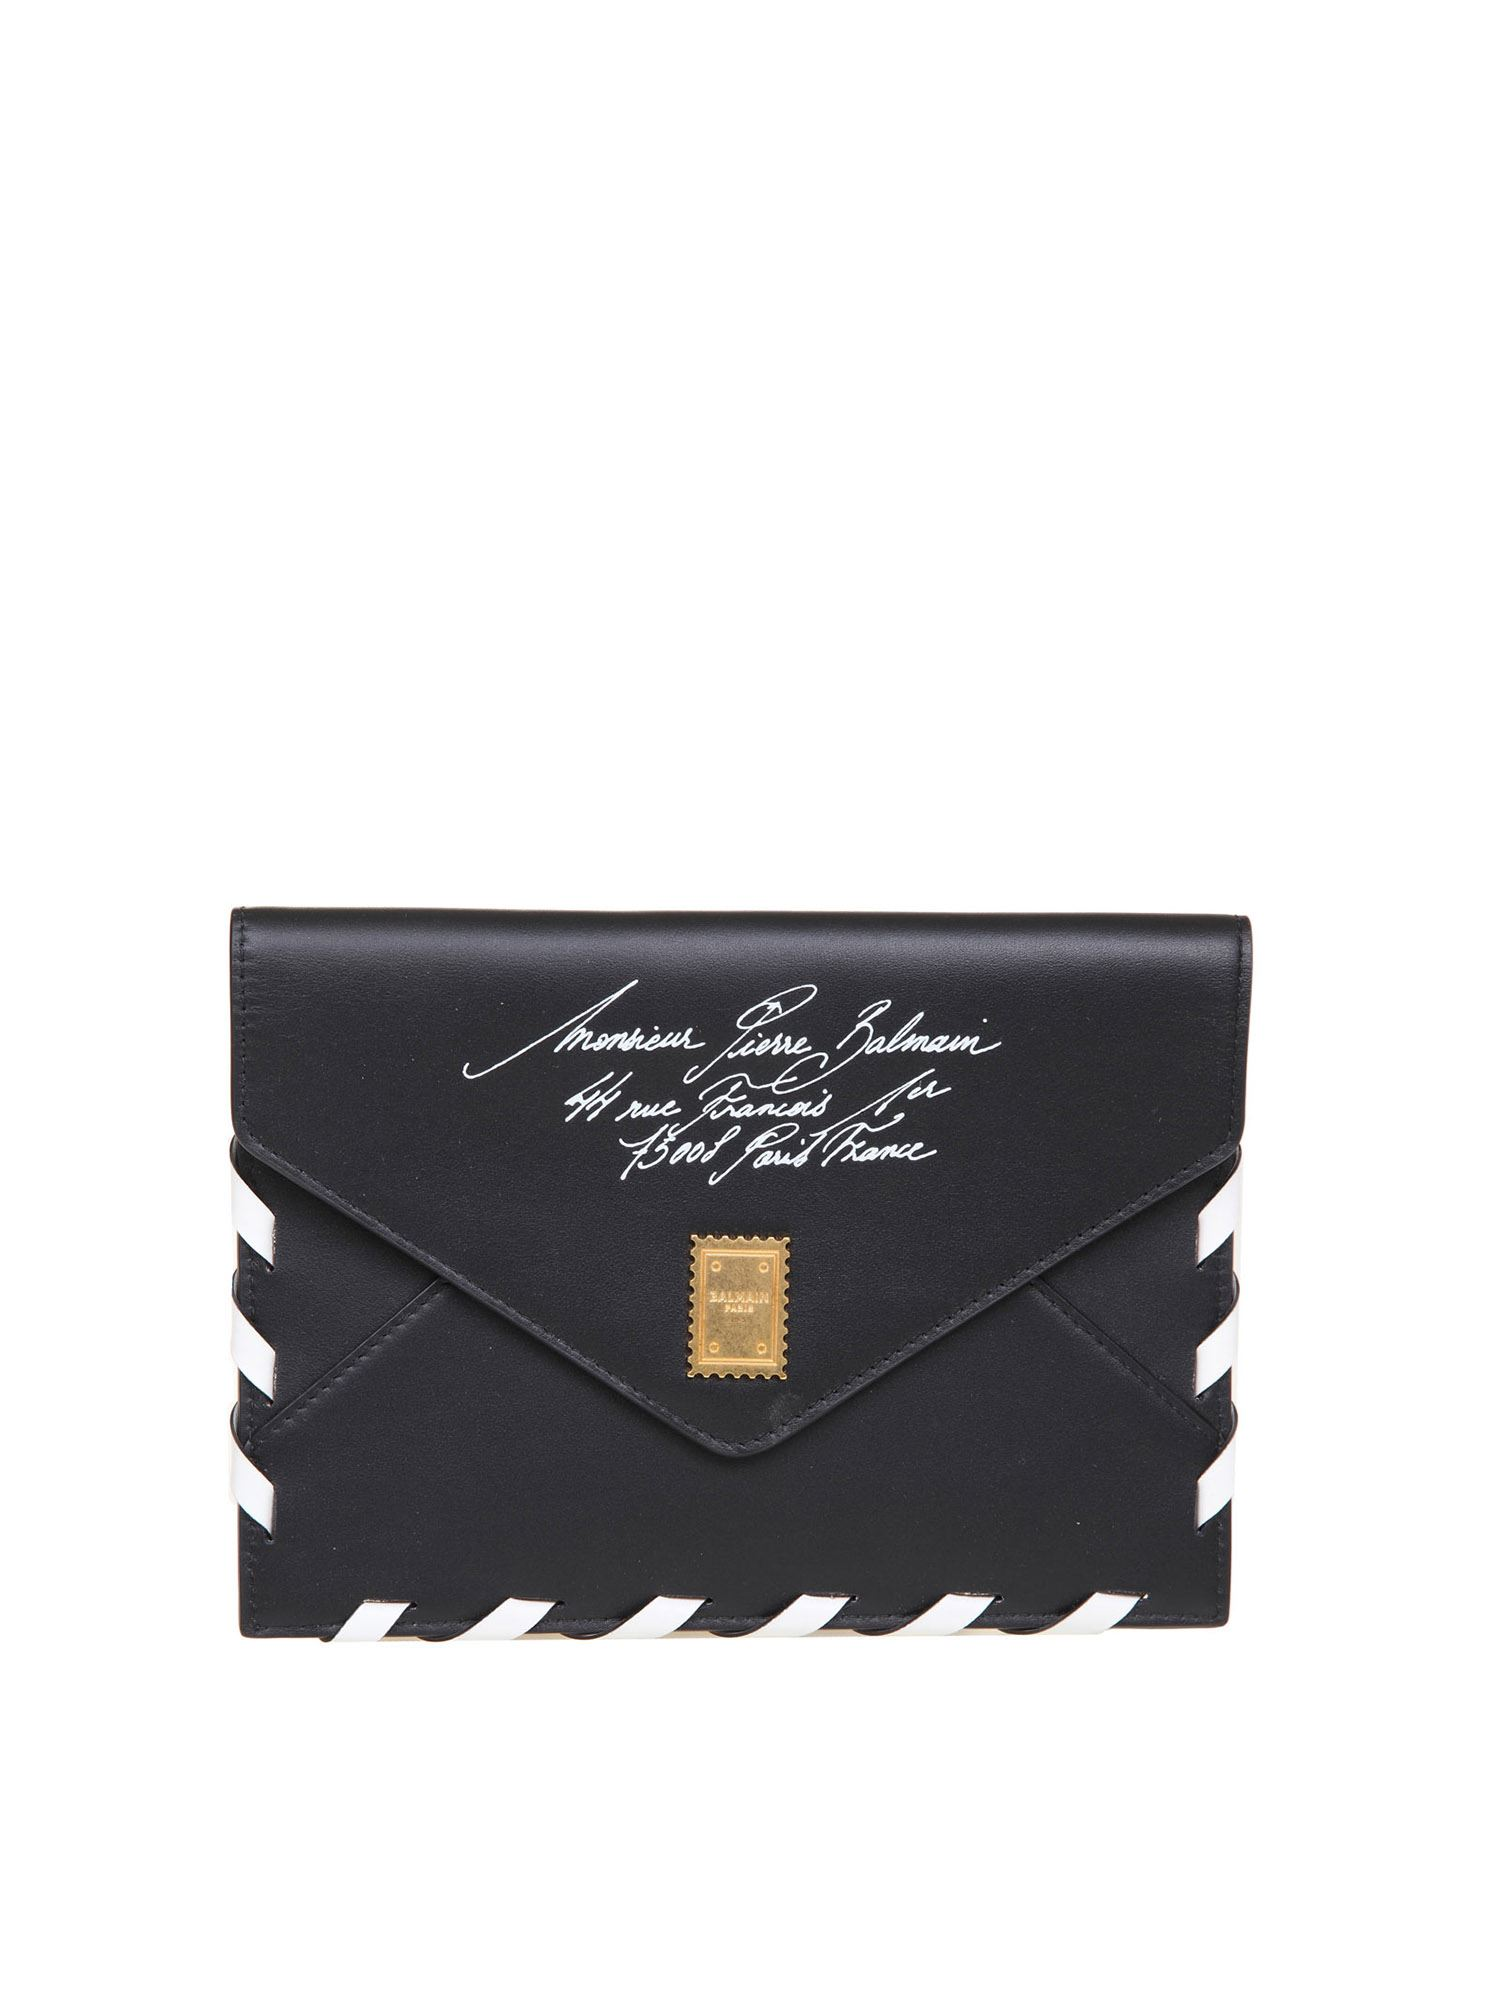 Balmain B-ENVELOPE CLUTCH IN BLACK